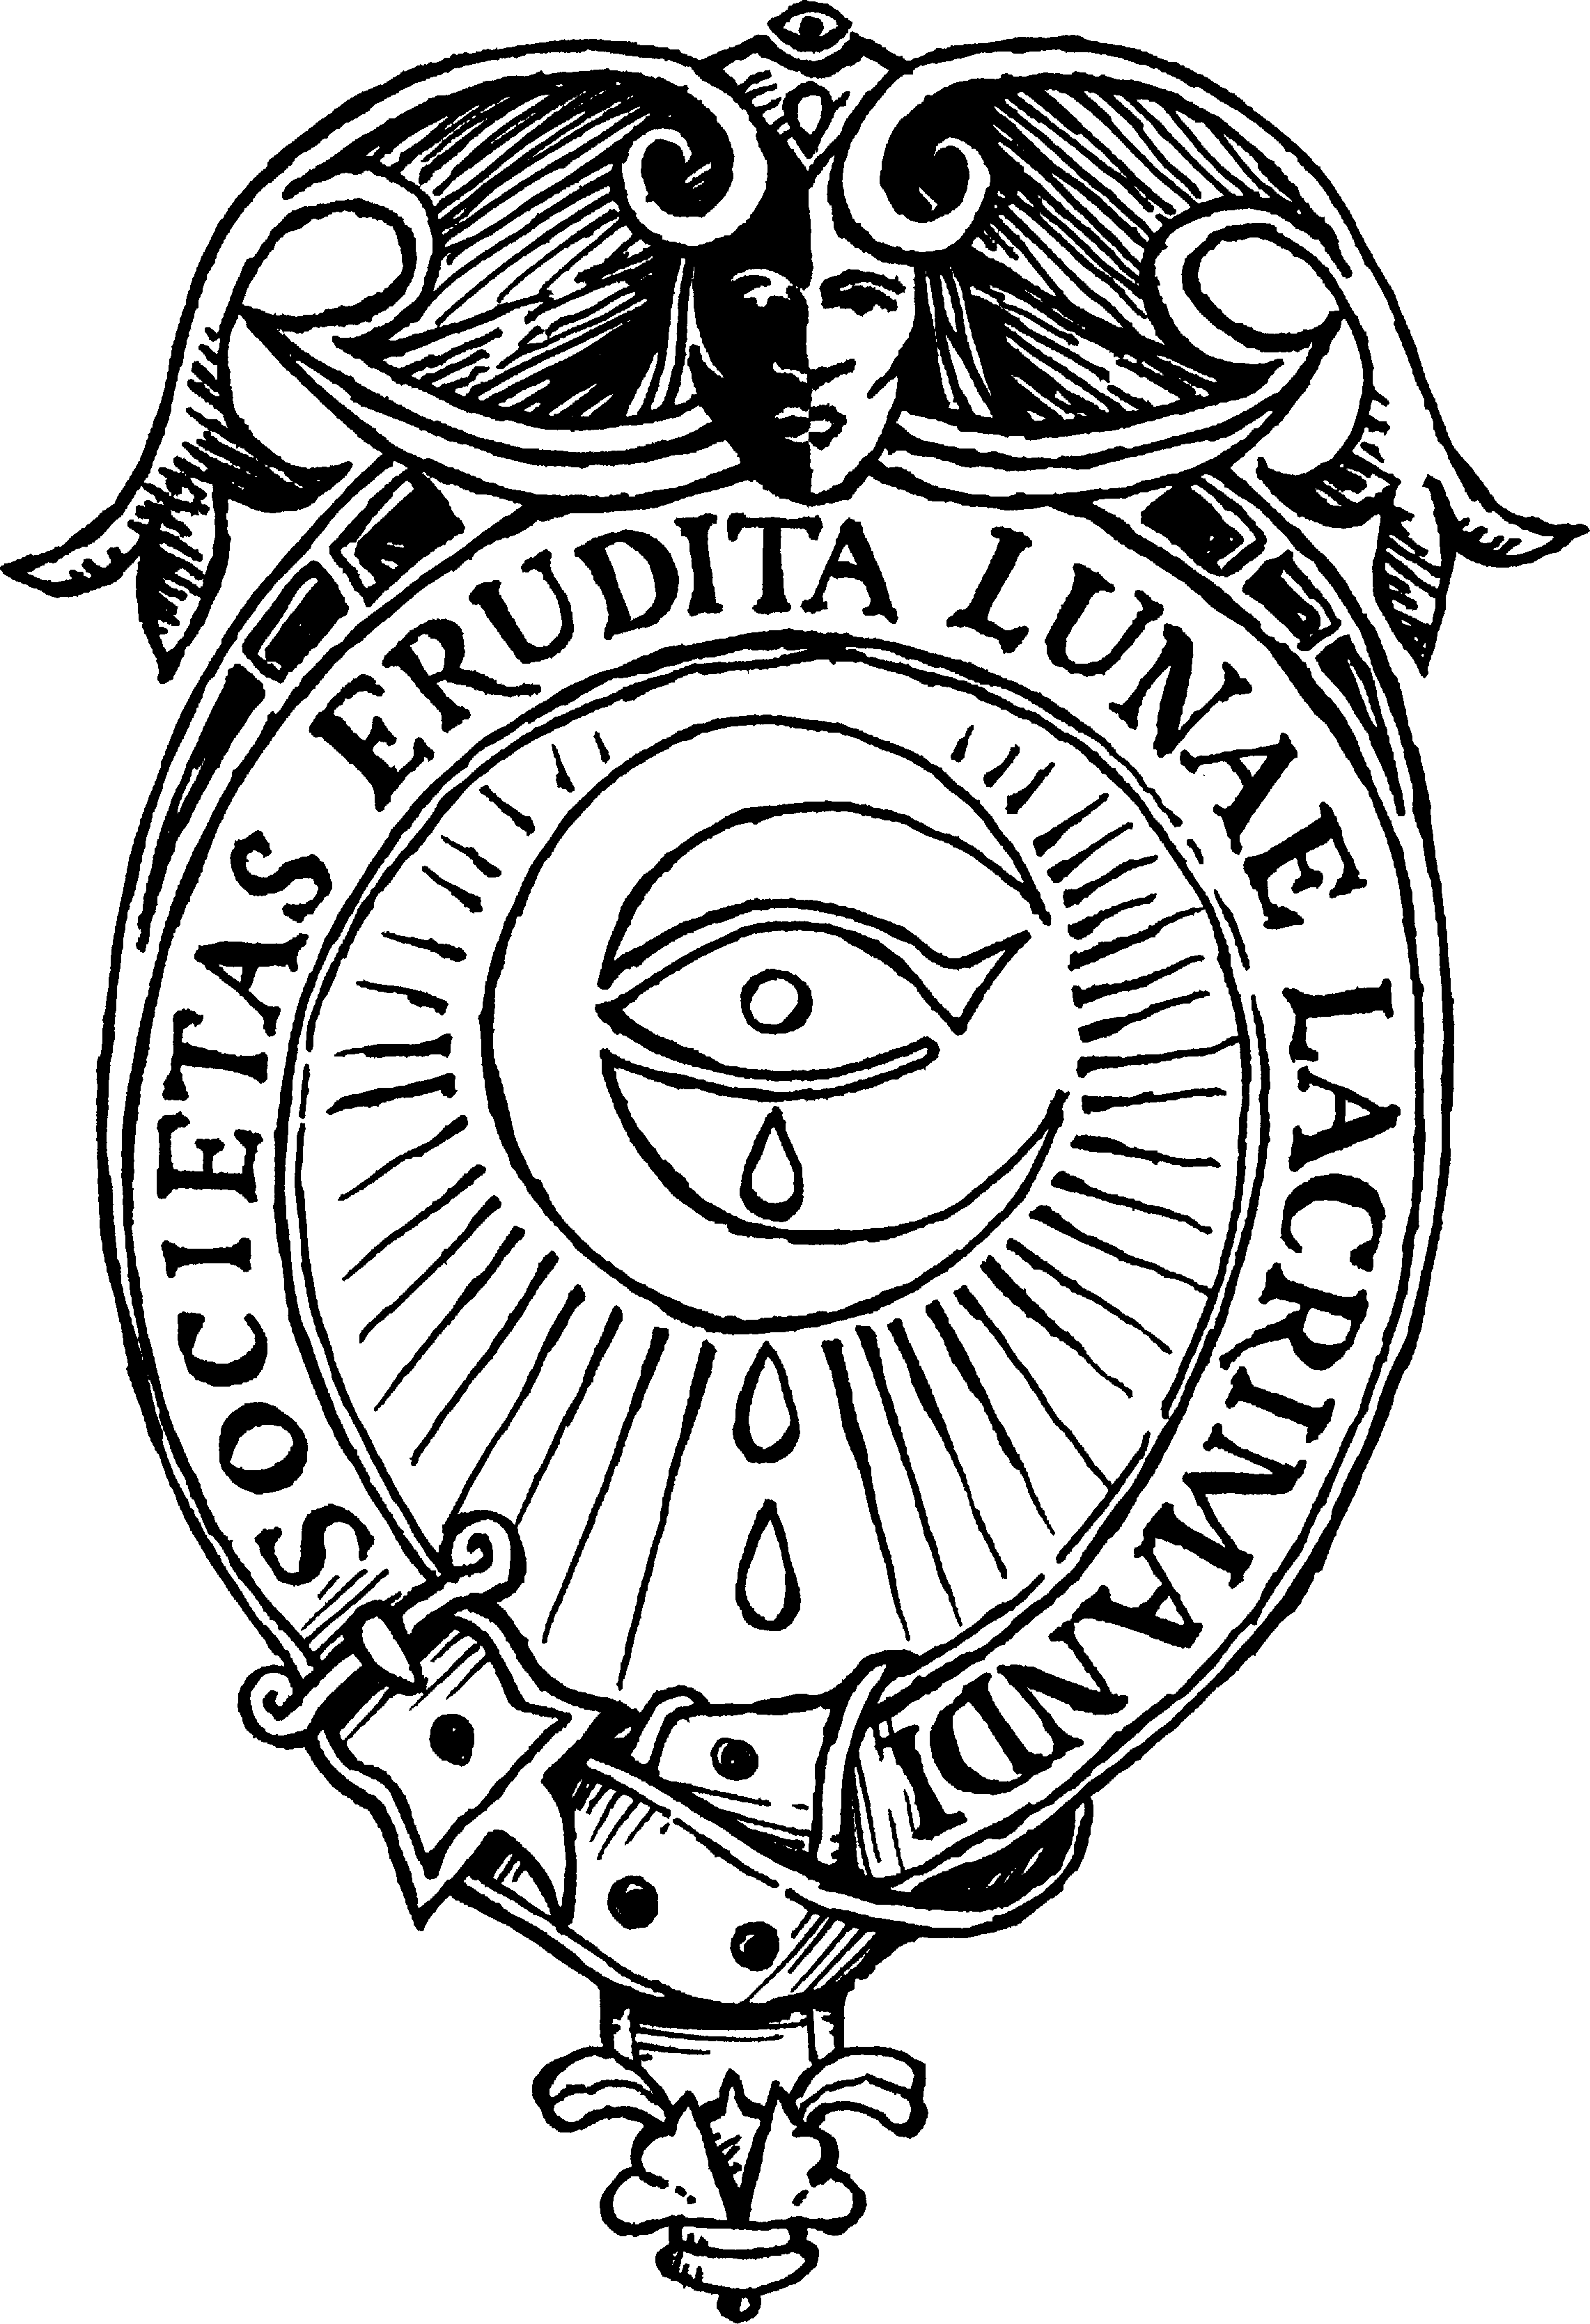 Enlightened Society of the Weeping Moon